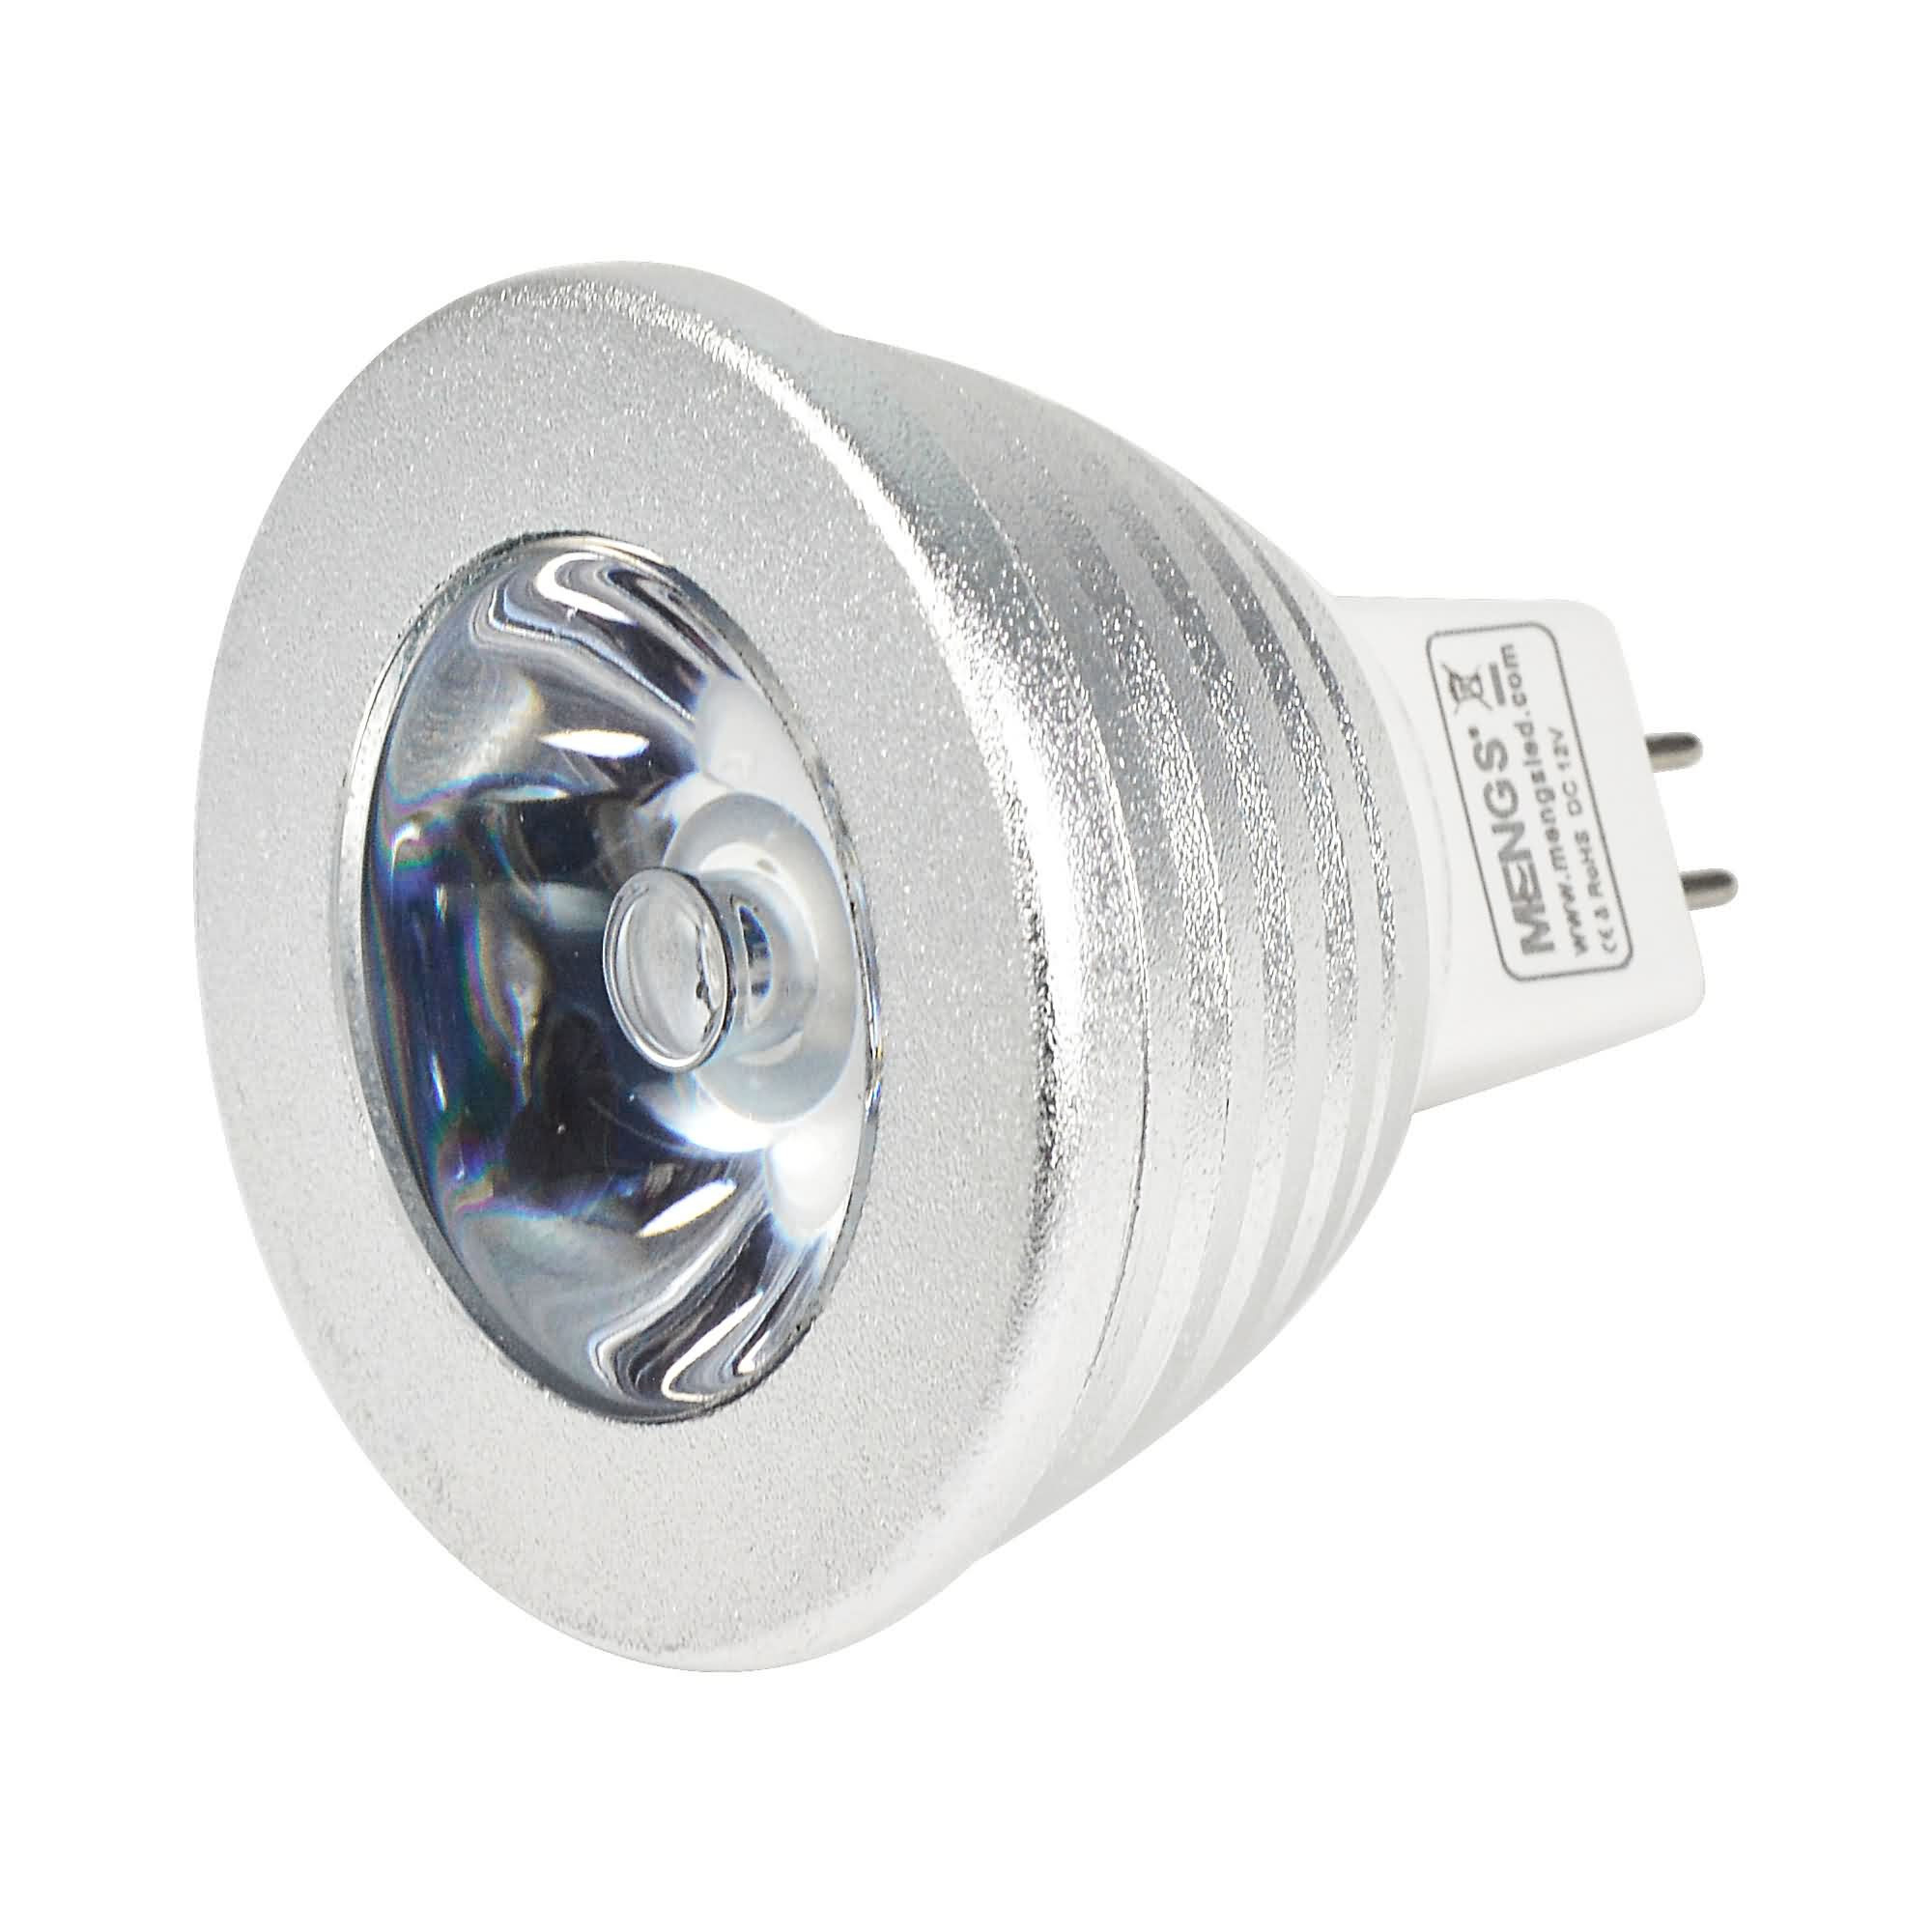 Mr16 3w Led Rgb Light 16 Colour Changing Smd Leds Led Spotlight Lamp Bulb With Ir Remote Control